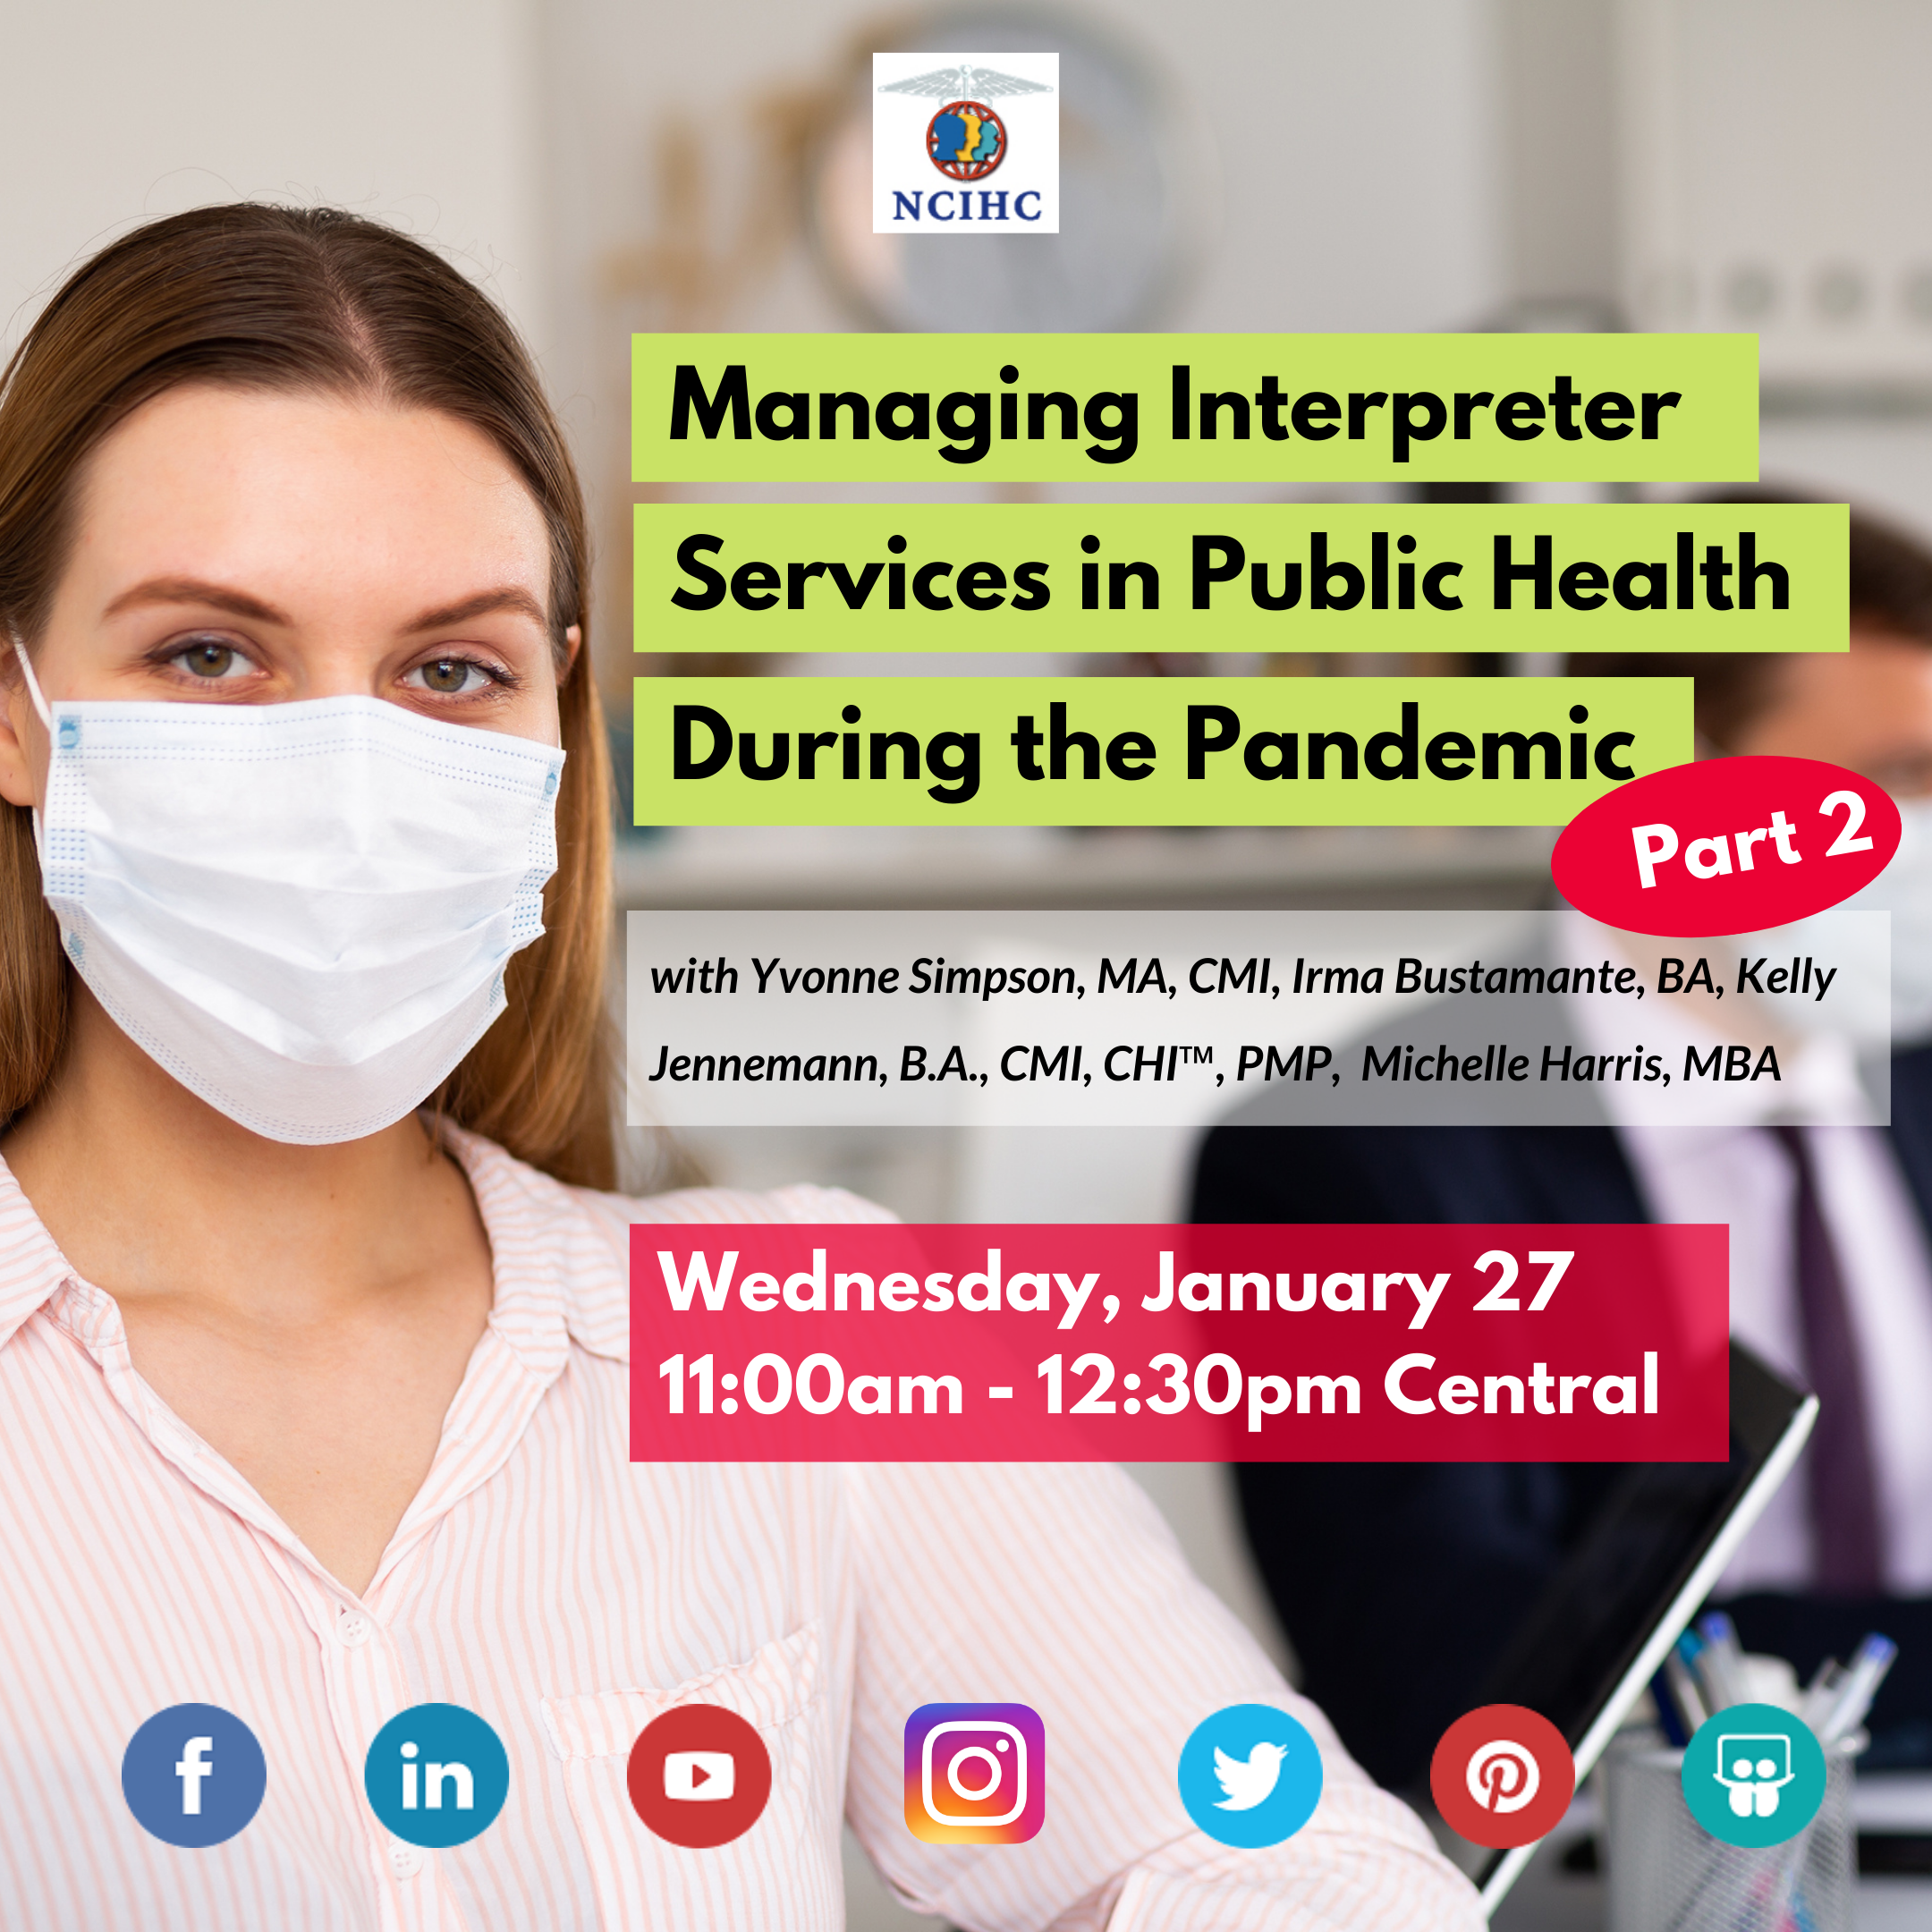 Managing Interpreter Services in Pandemic Panel Discussion Part 2